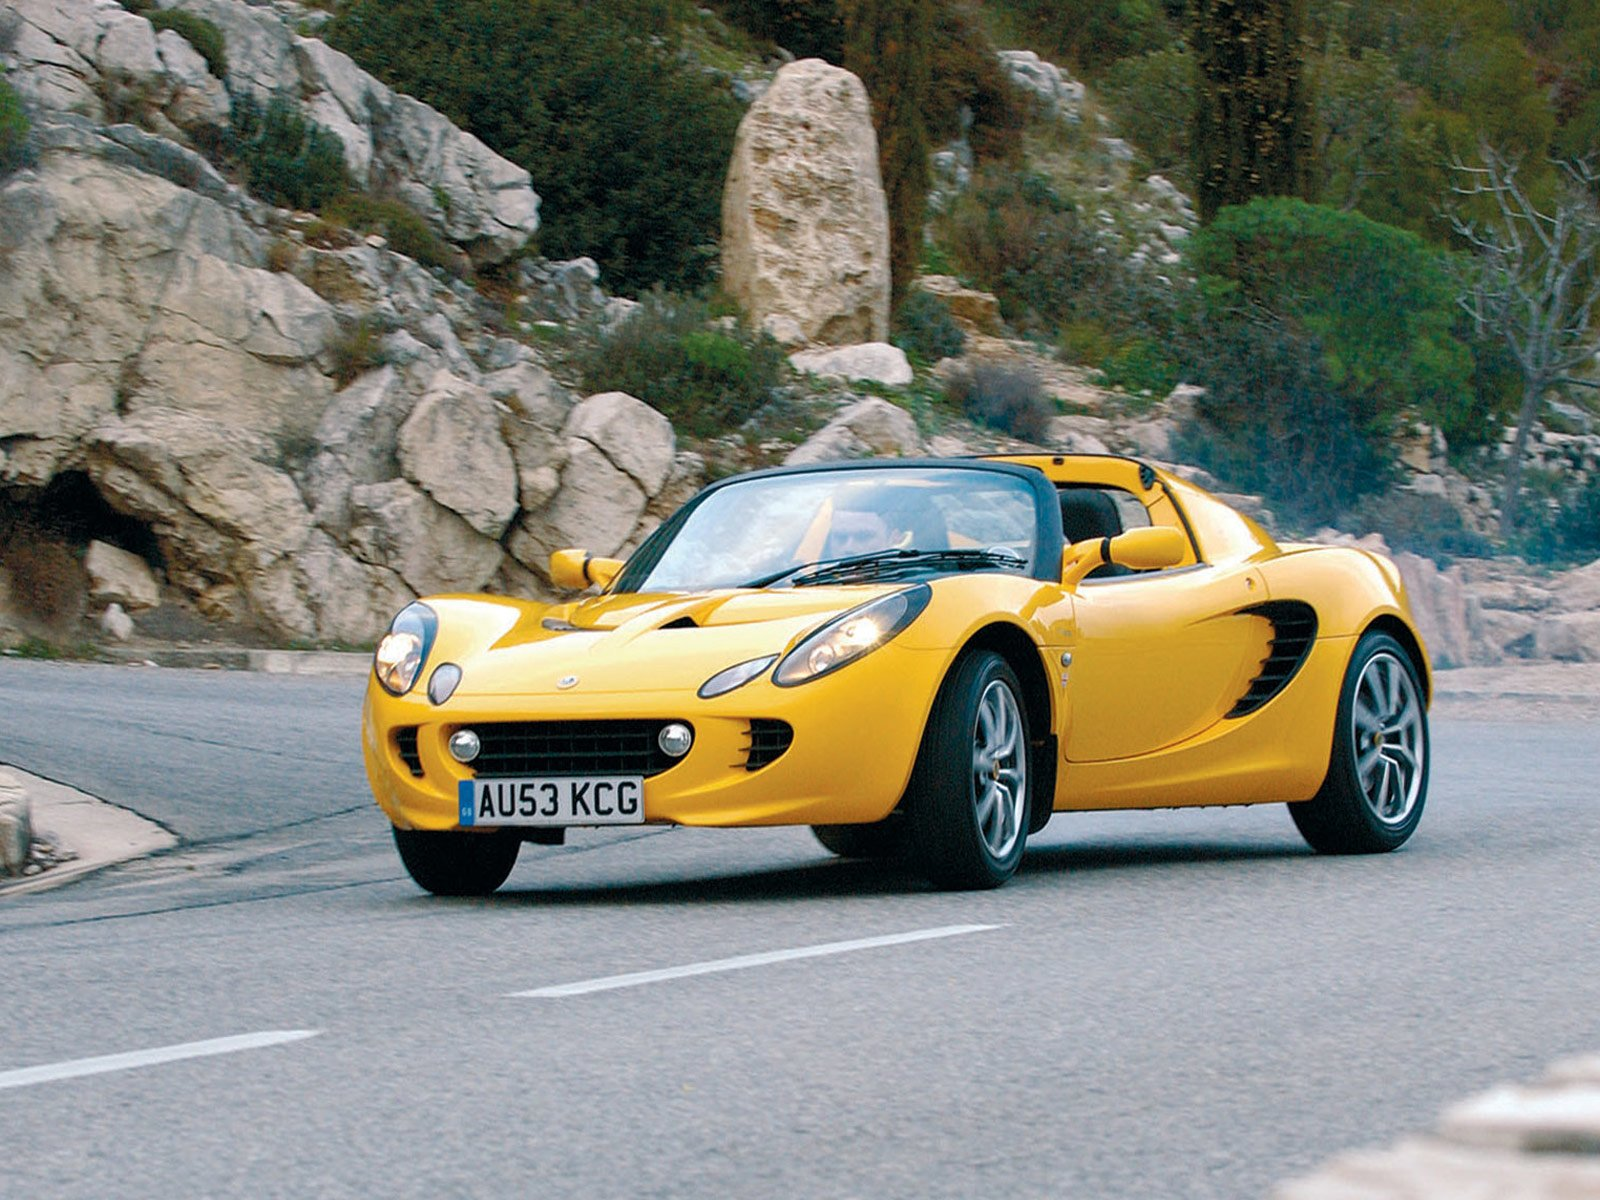 New 2005 Lotus Elise Lotus Car Picture On This Month